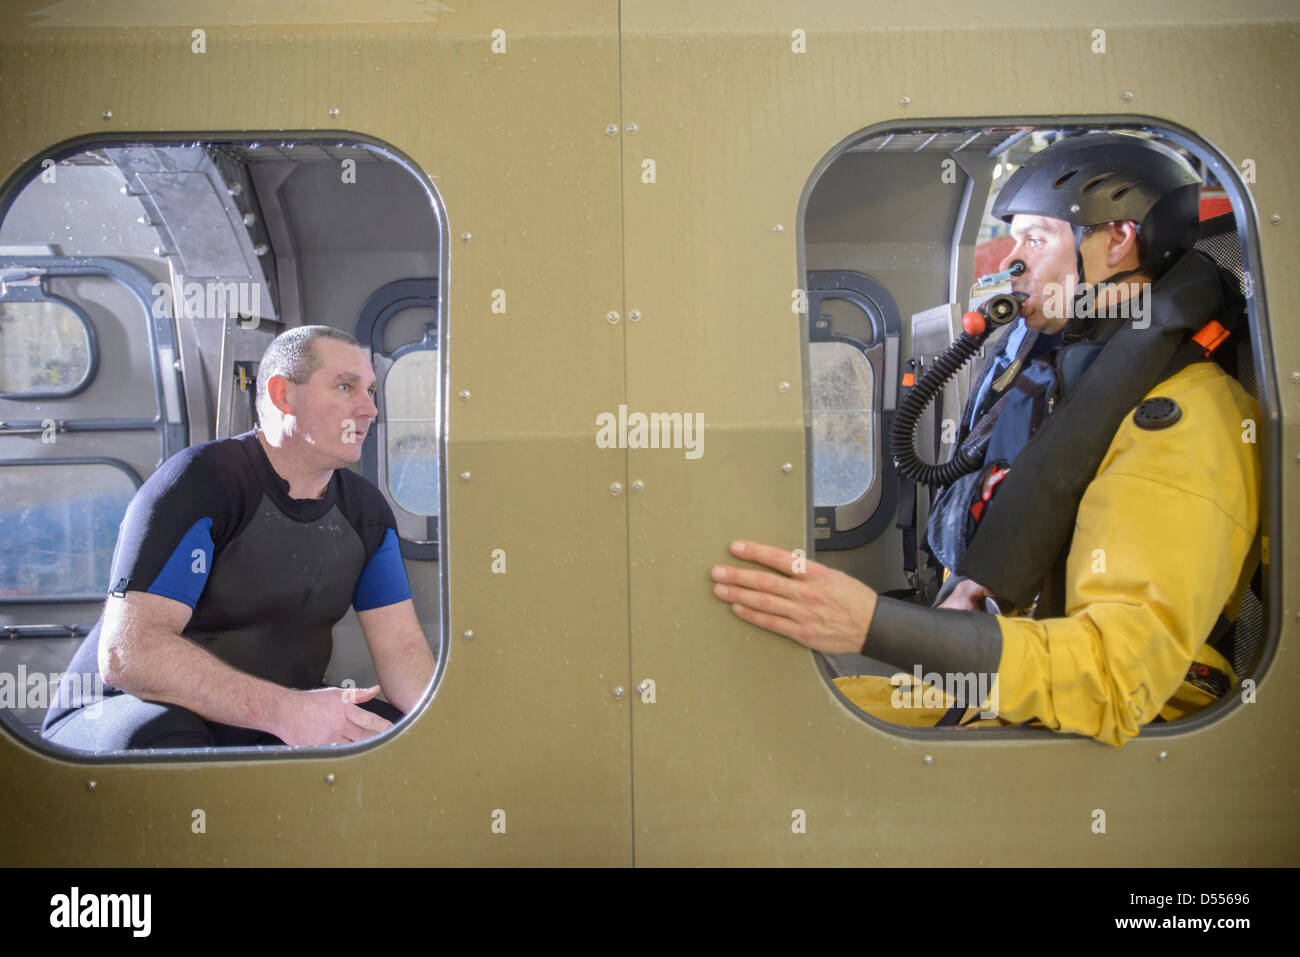 Oil workers in simulated helicopter - Stock Image